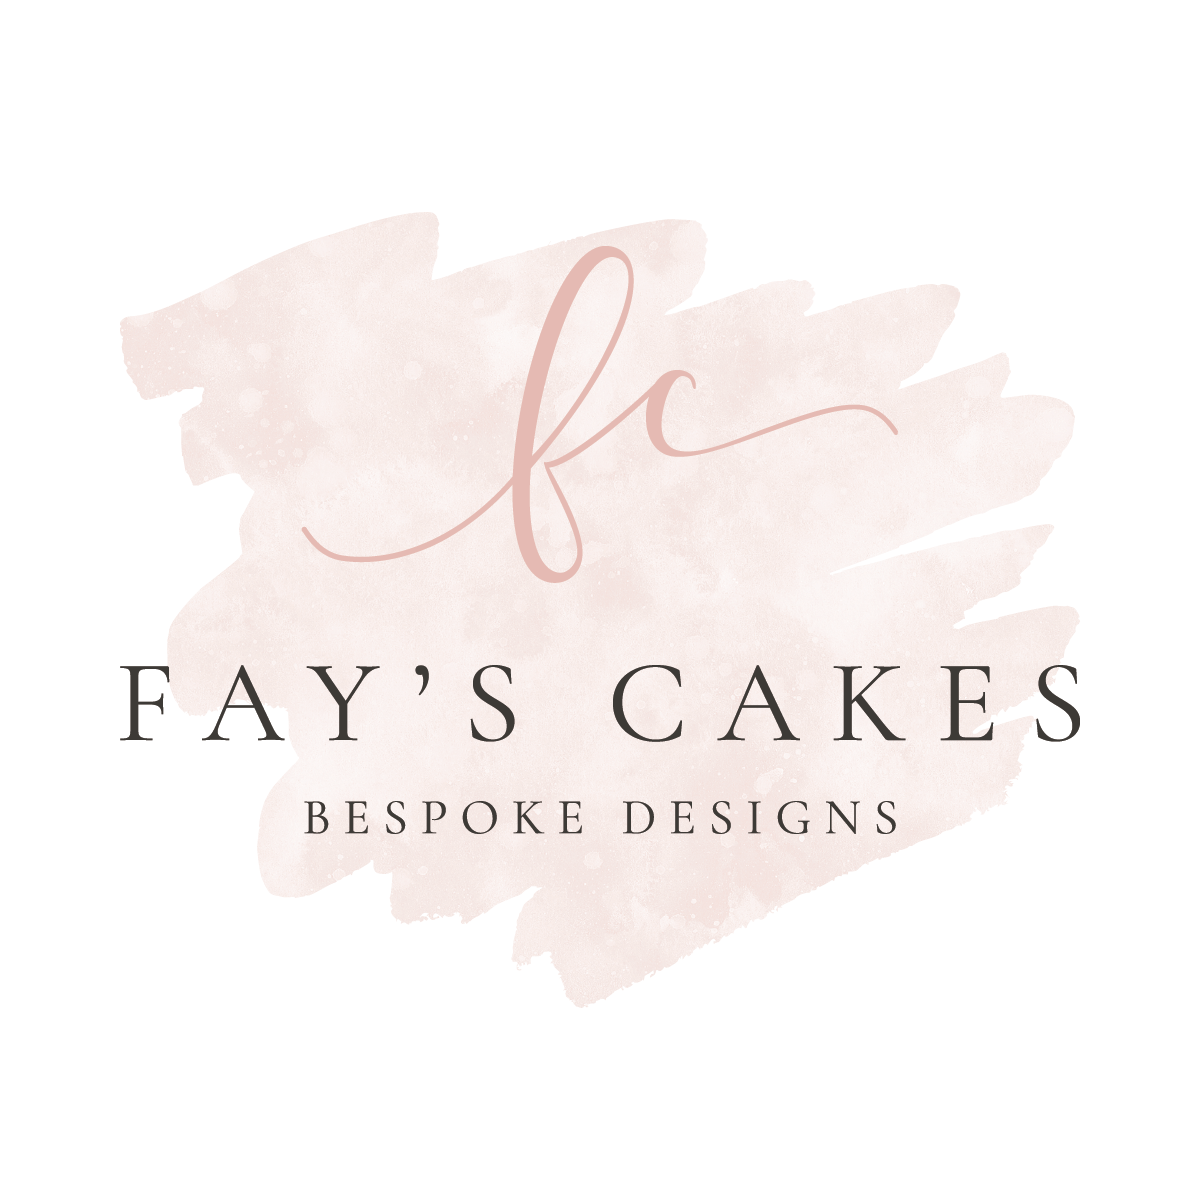 Fay's Cakes - Fay's cakes are based in Livingston, West Lothian and deliver throughout Scotland. Their fabulous contemporary styling and flawlessly clean finish ensure that not only do their cakes make a stunning centrepiece for your event, they taste just as amazing as they look!